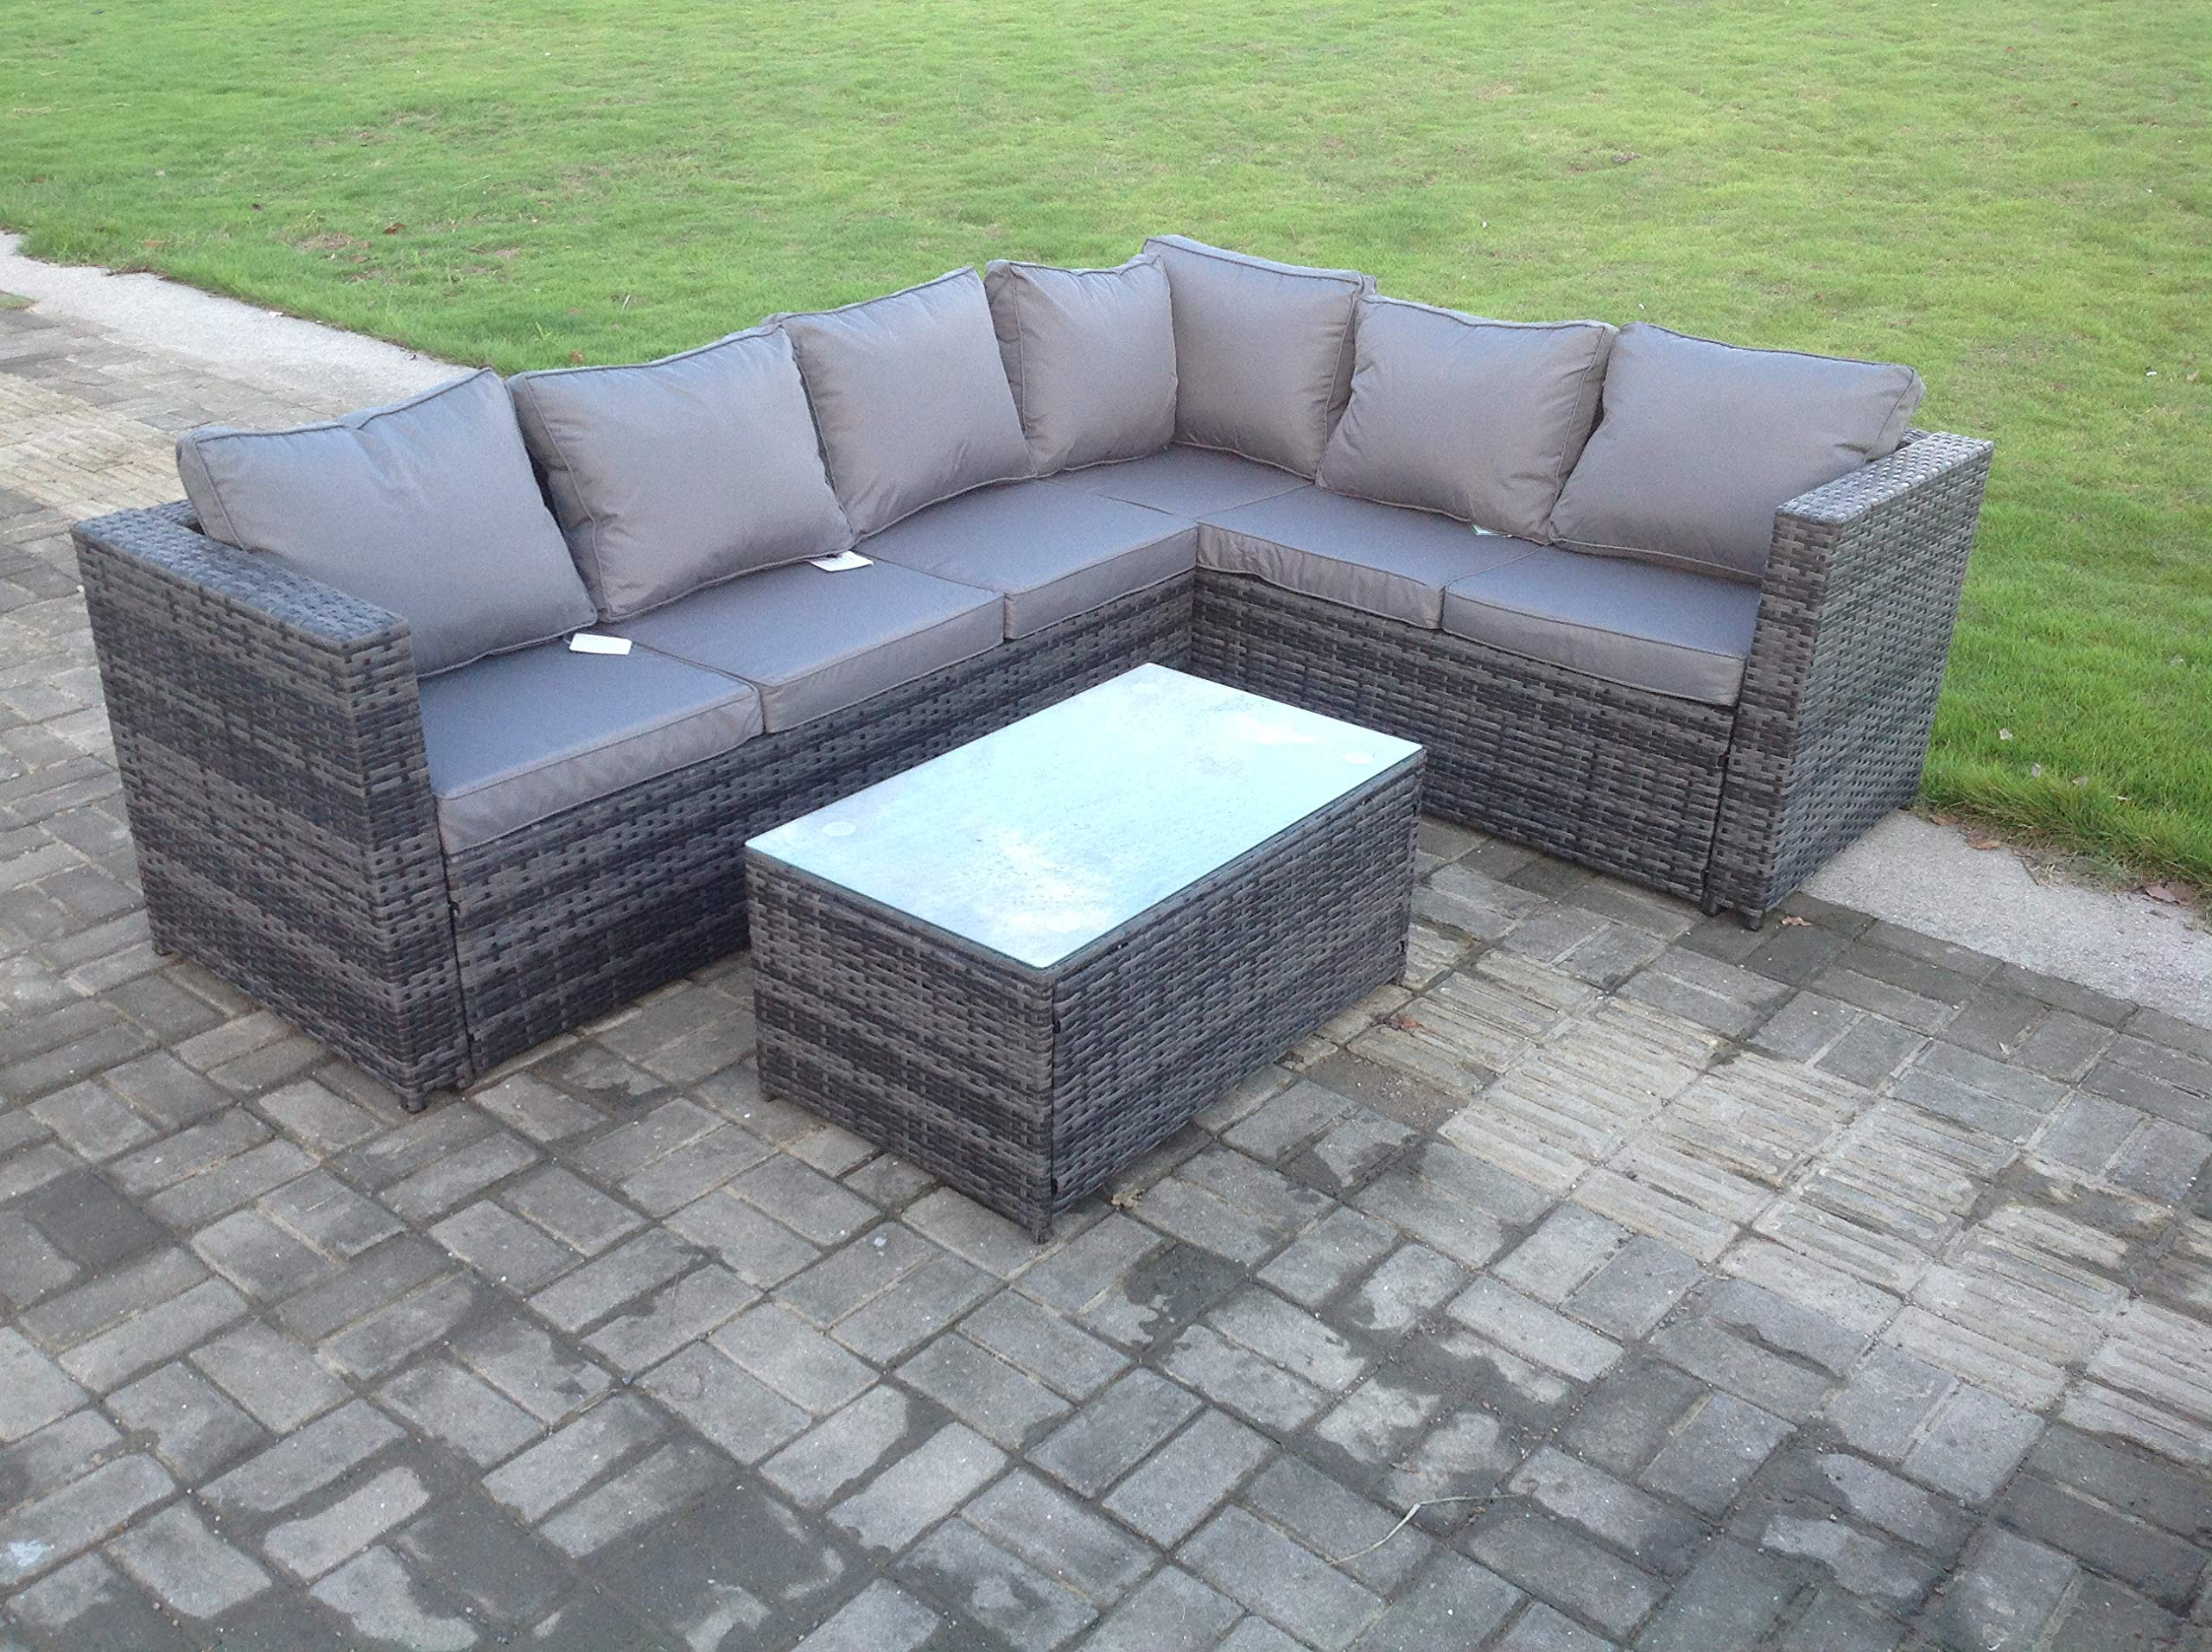 Rattan Corner Sofa Set 6 Seater Garden Furniture including Outdoor Coffee  table with cushion in Grey